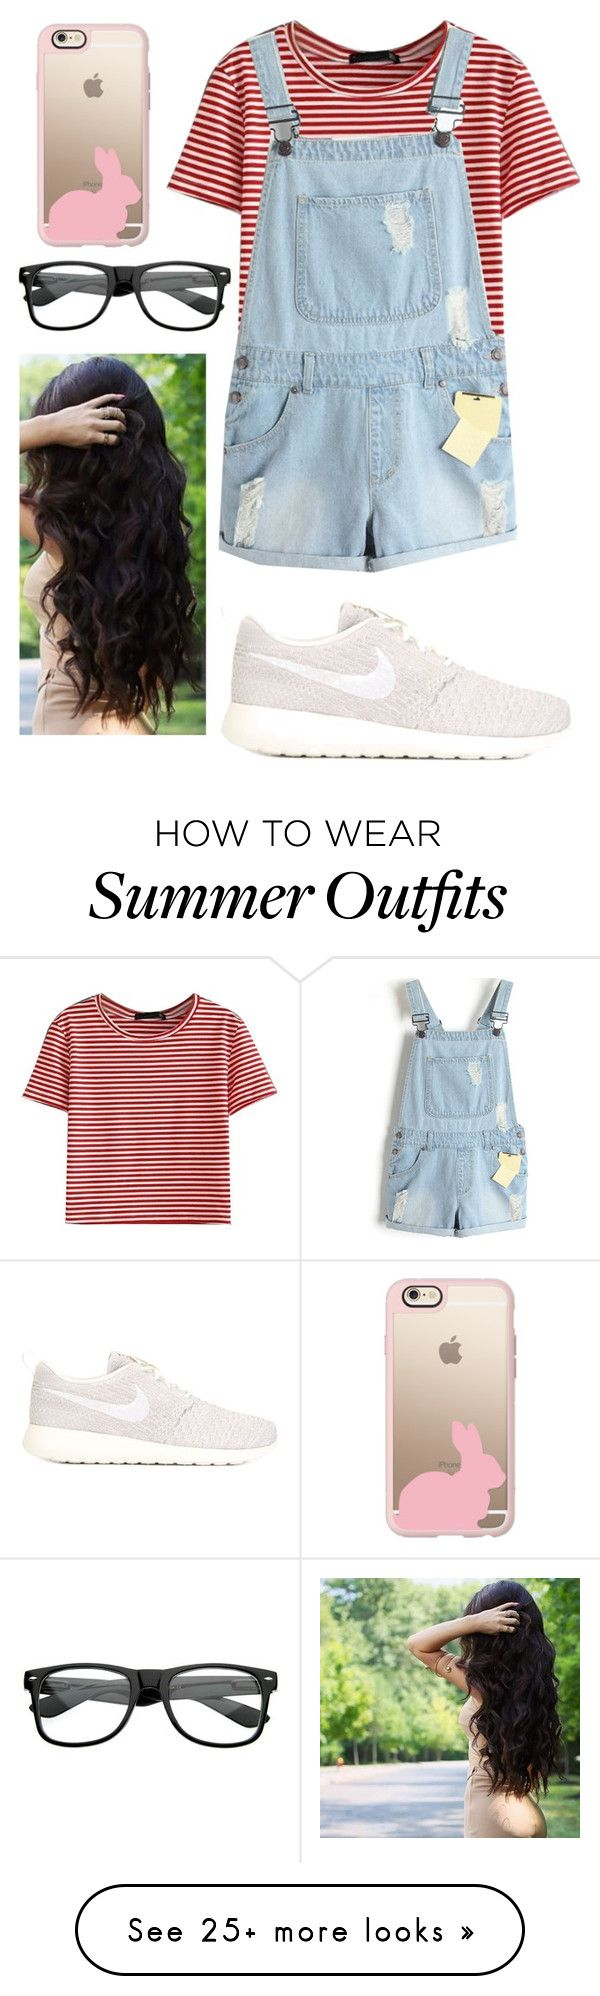 """Outfit #220. Teen summer look"" by sarahstacey on Polyvore featuring WithChic, NIKE and Casetify"